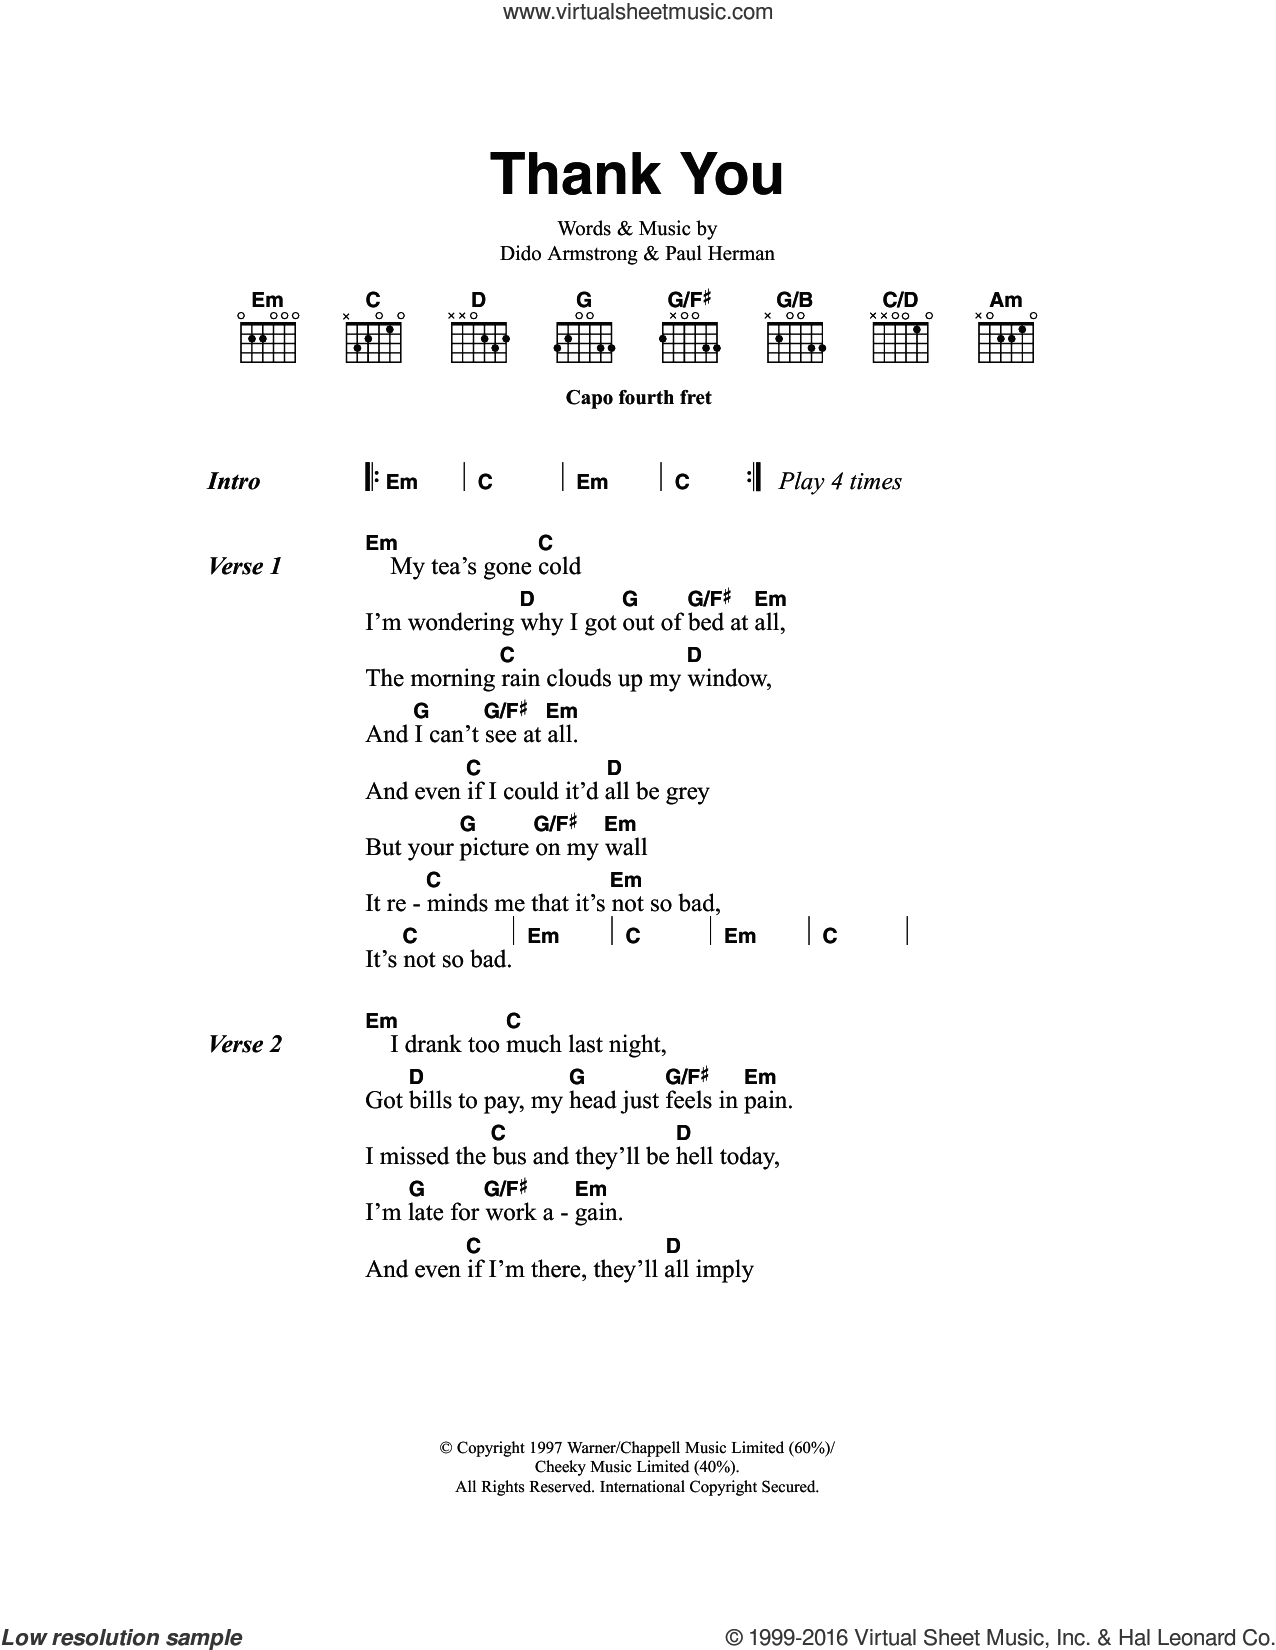 Thank You sheet music for guitar (chords) by Dido Armstrong and Paul Herman. Score Image Preview.